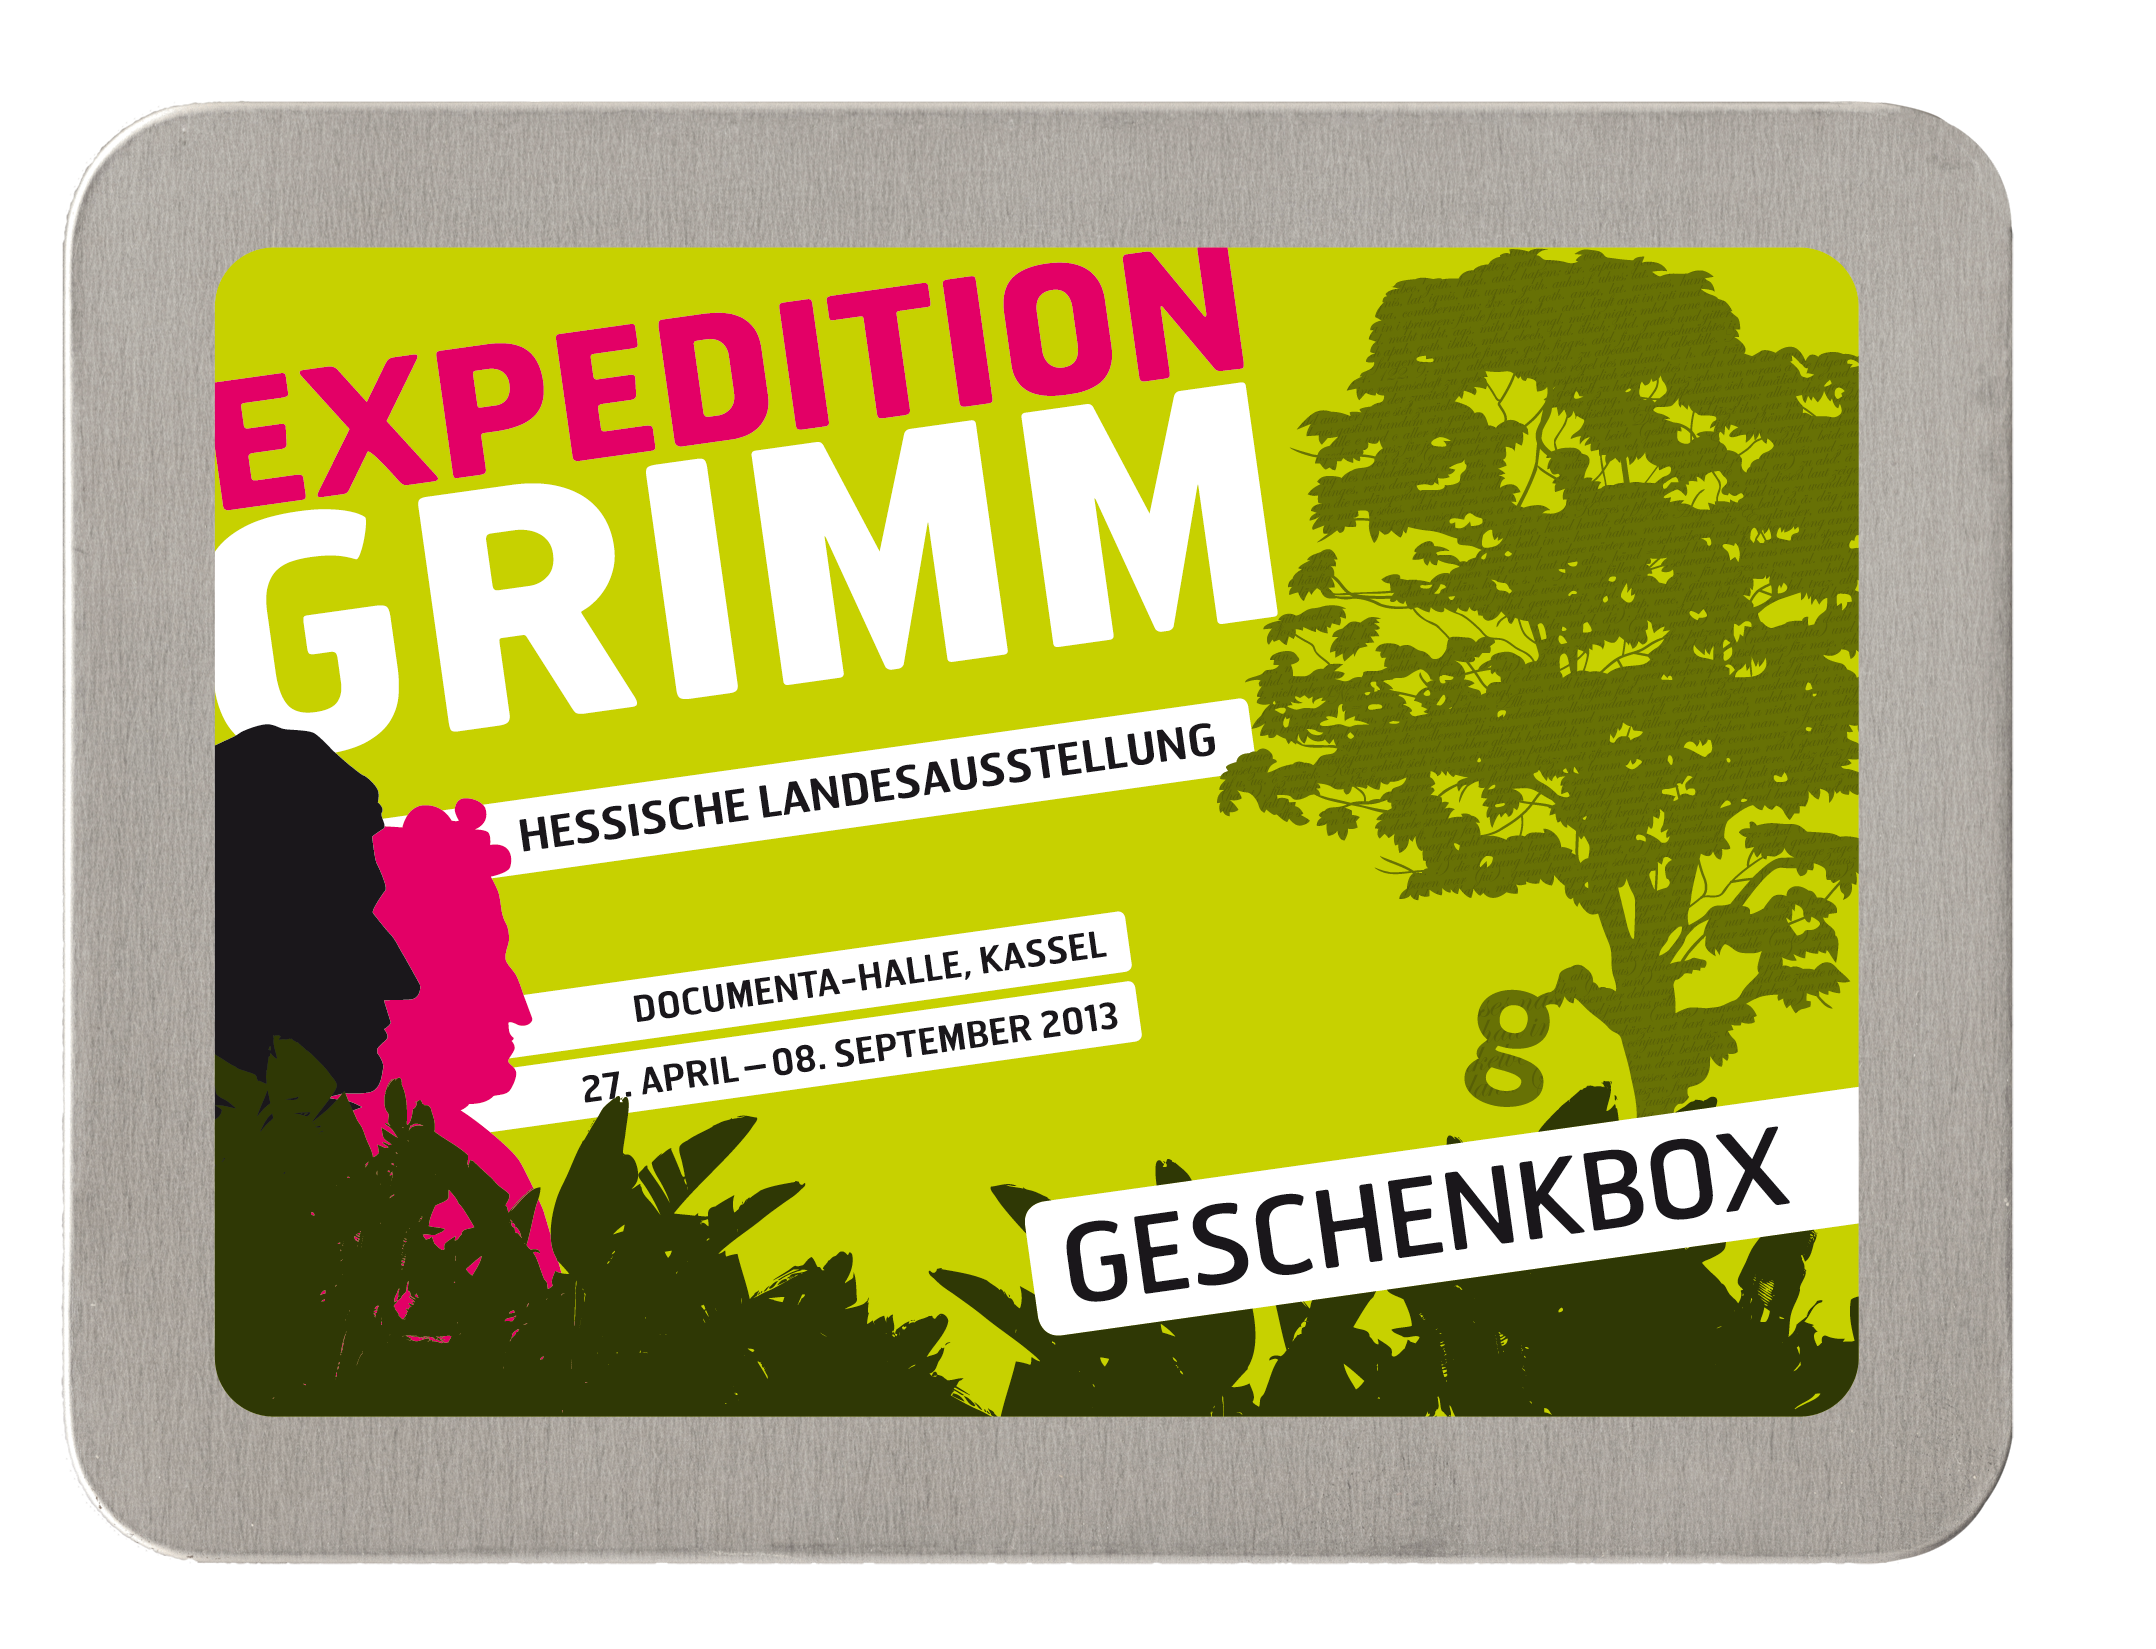 Die GRIMM GESCHENKBOX